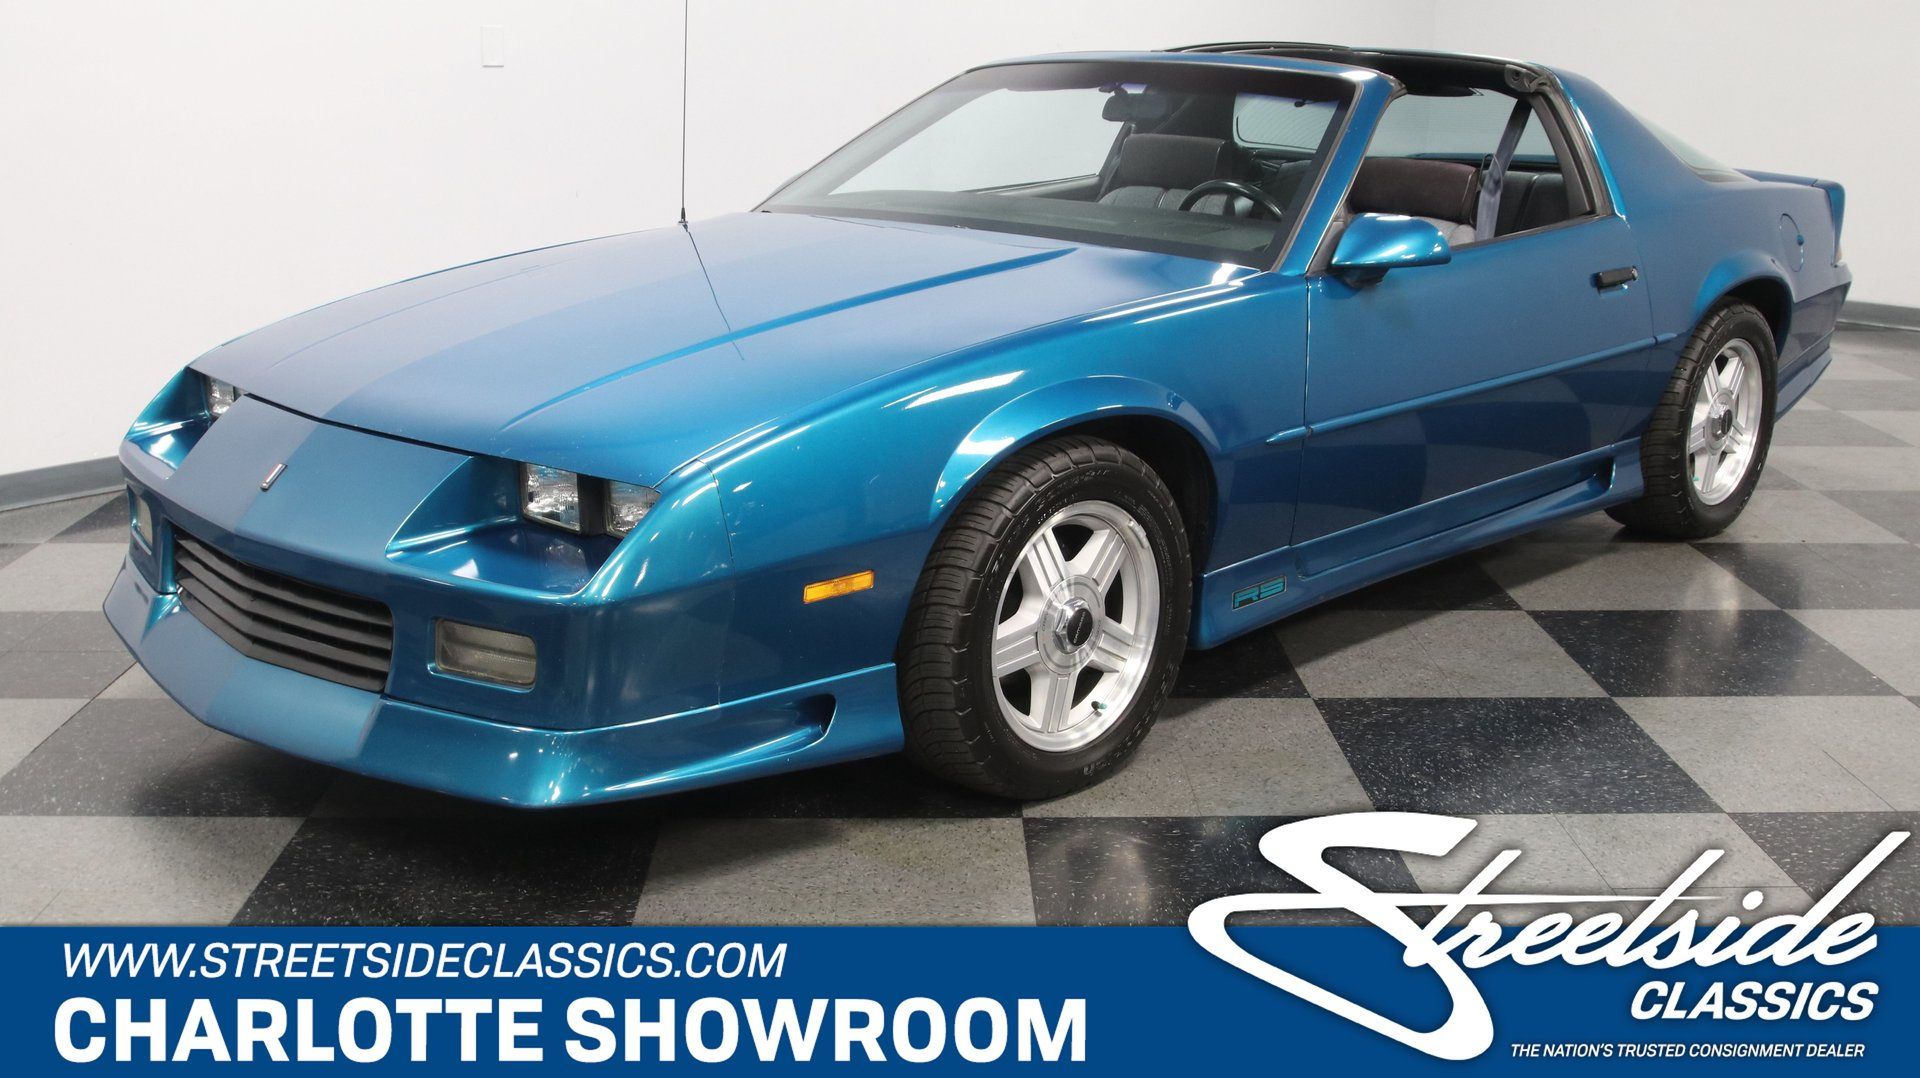 1991 chevrolet camaro streetside classics the nation s trusted classic car consignment dealer 1991 chevrolet camaro streetside